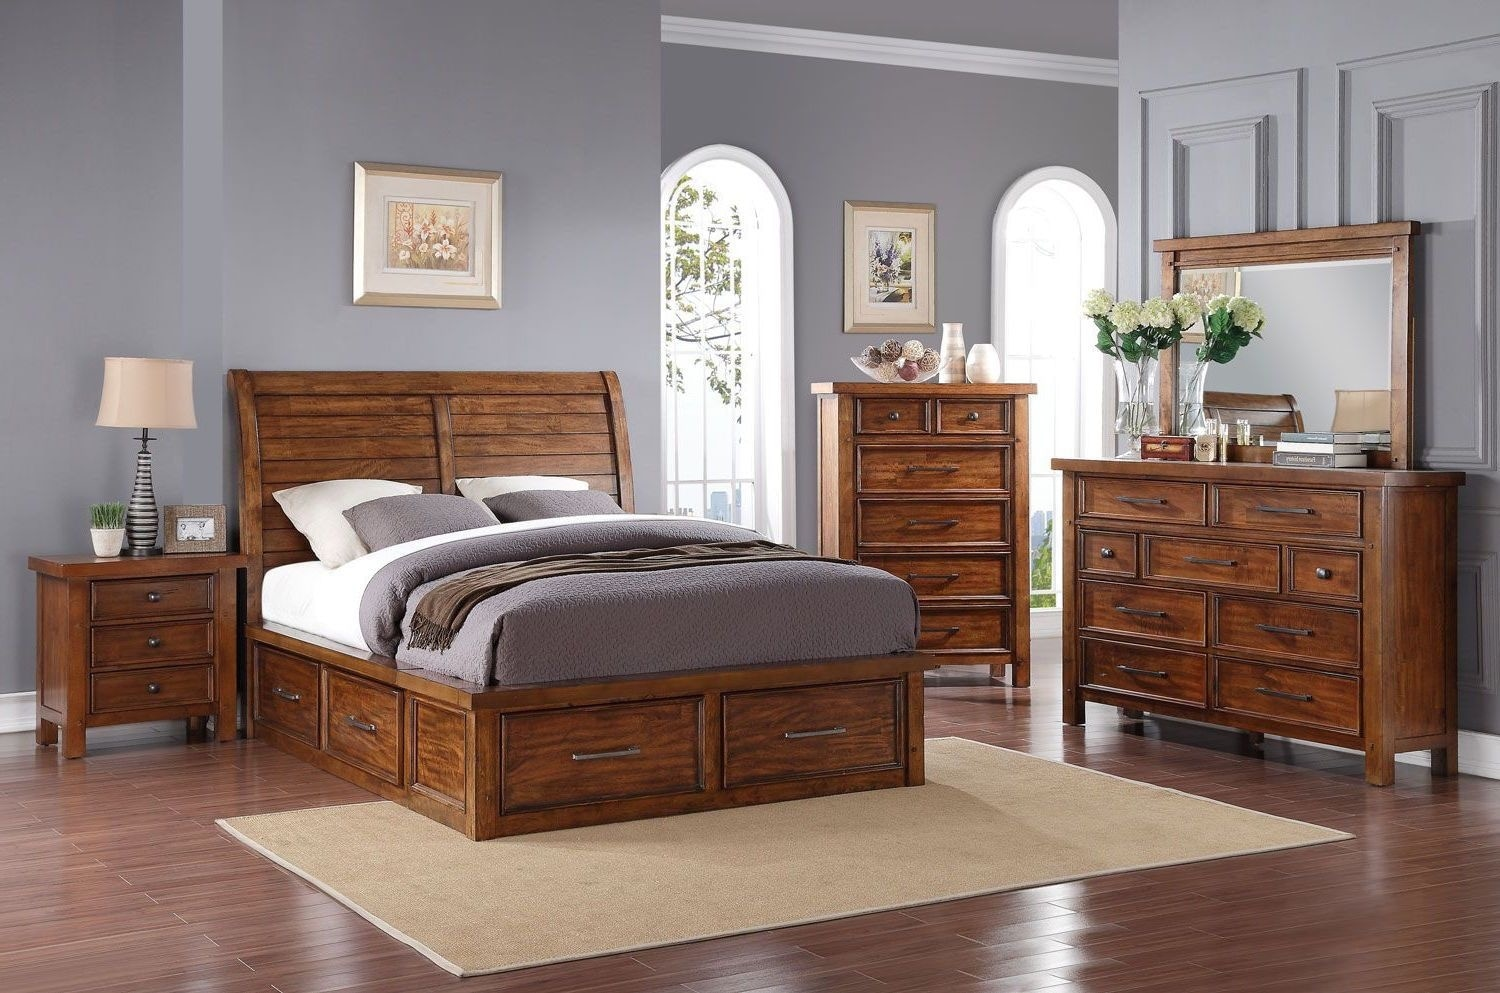 Bedroom Furniture - Sonoma 7-Piece King Storage Bedroom Package – Medium Brown